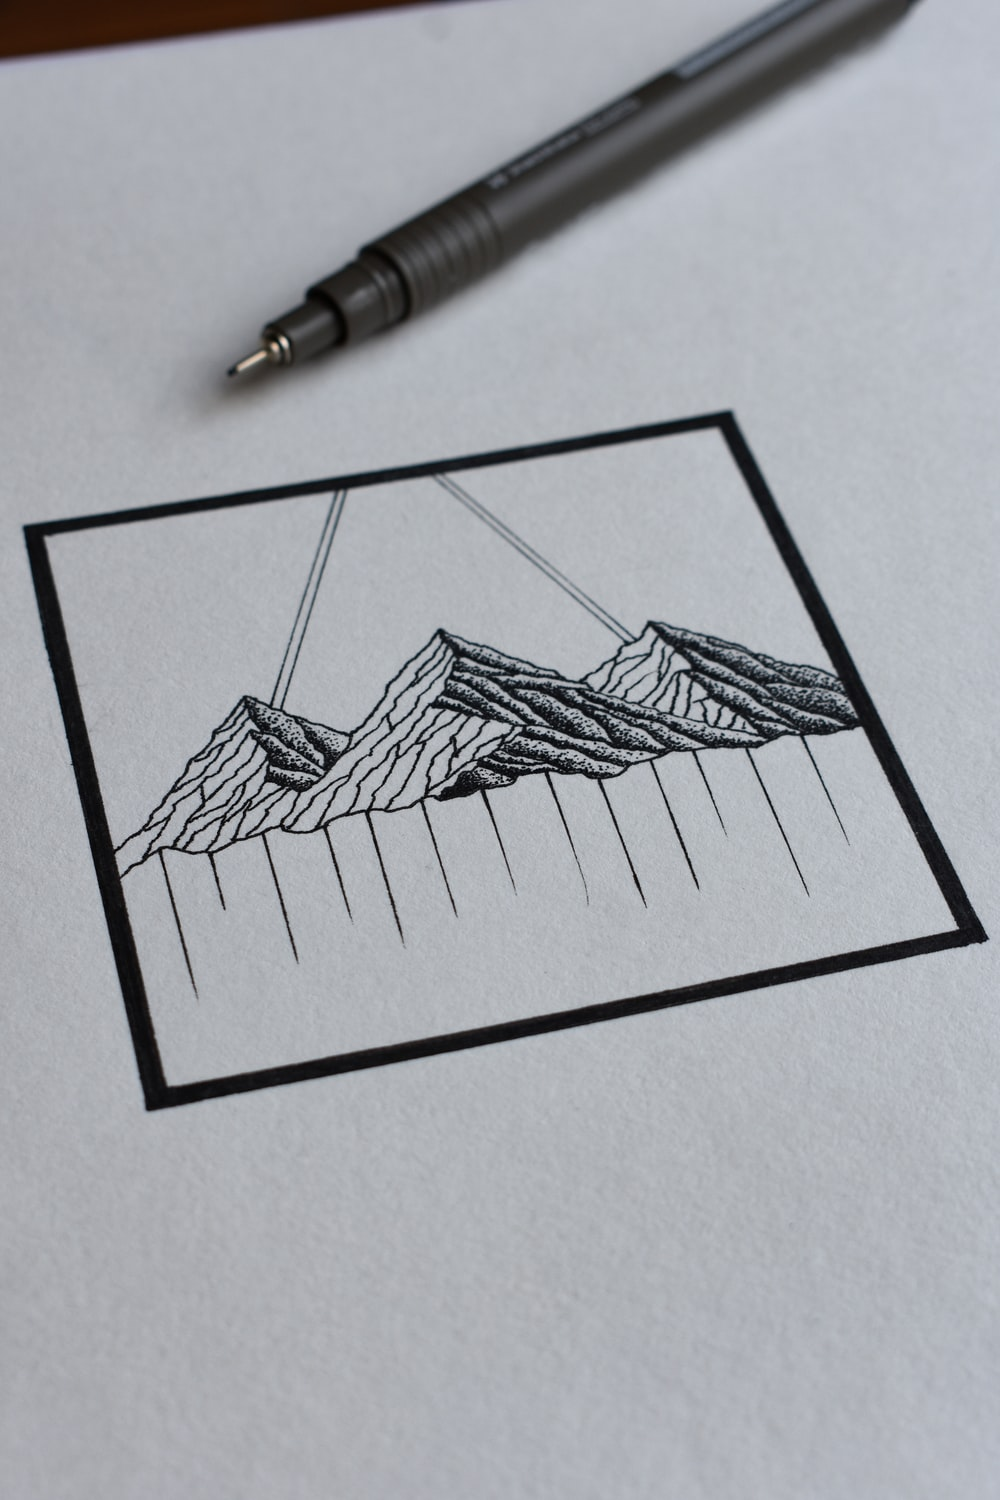 black and white sketch on white paper